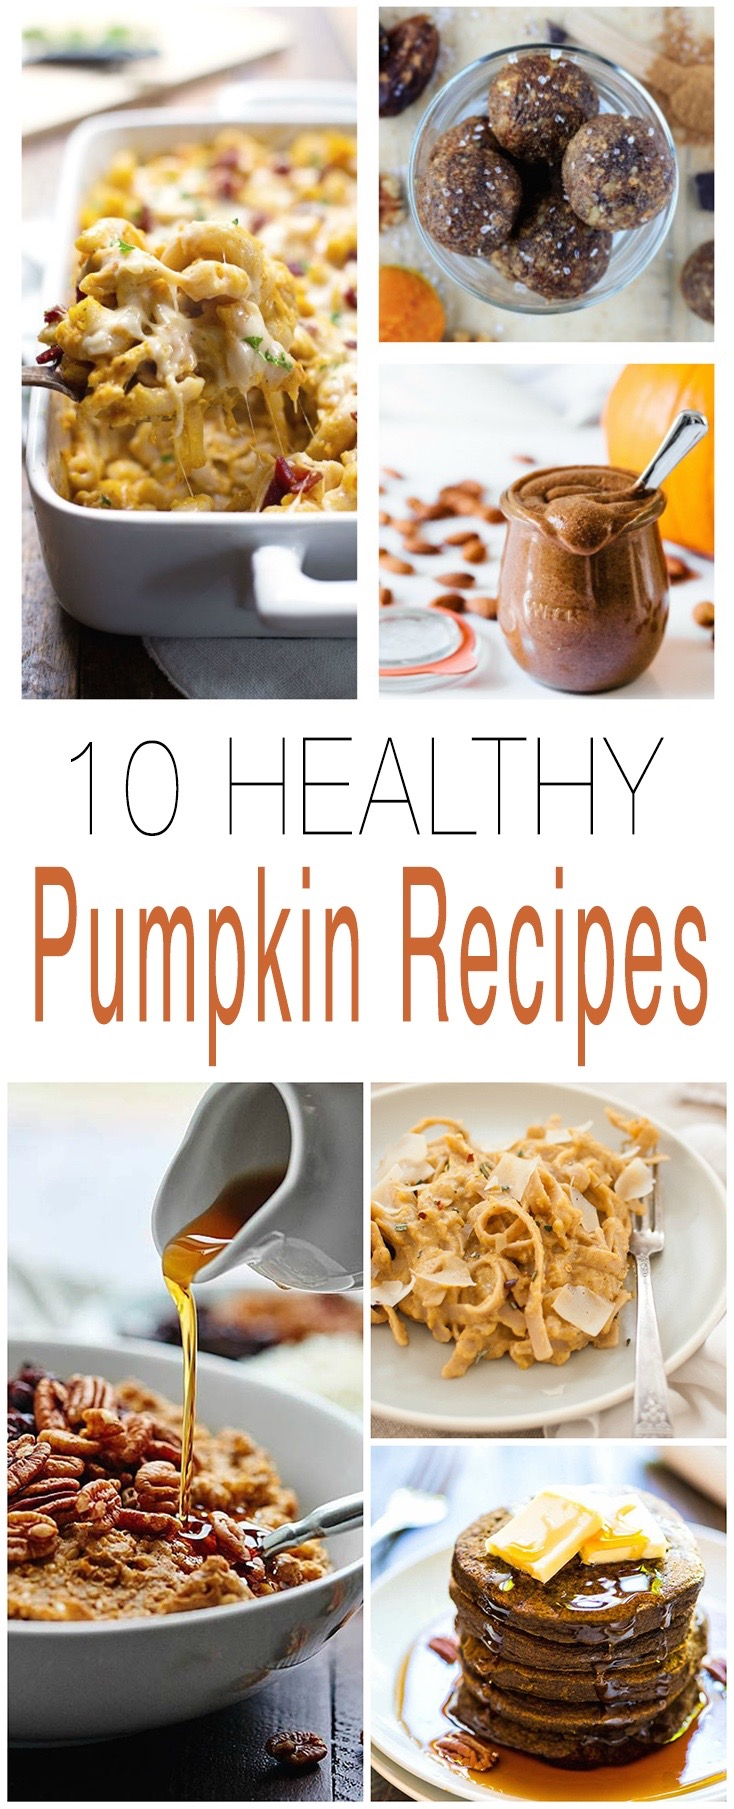 From breakfast, to dessert, and everything in between.. 10 Healthy Whole-Food Pumpkin Recipes to try out this Fall.